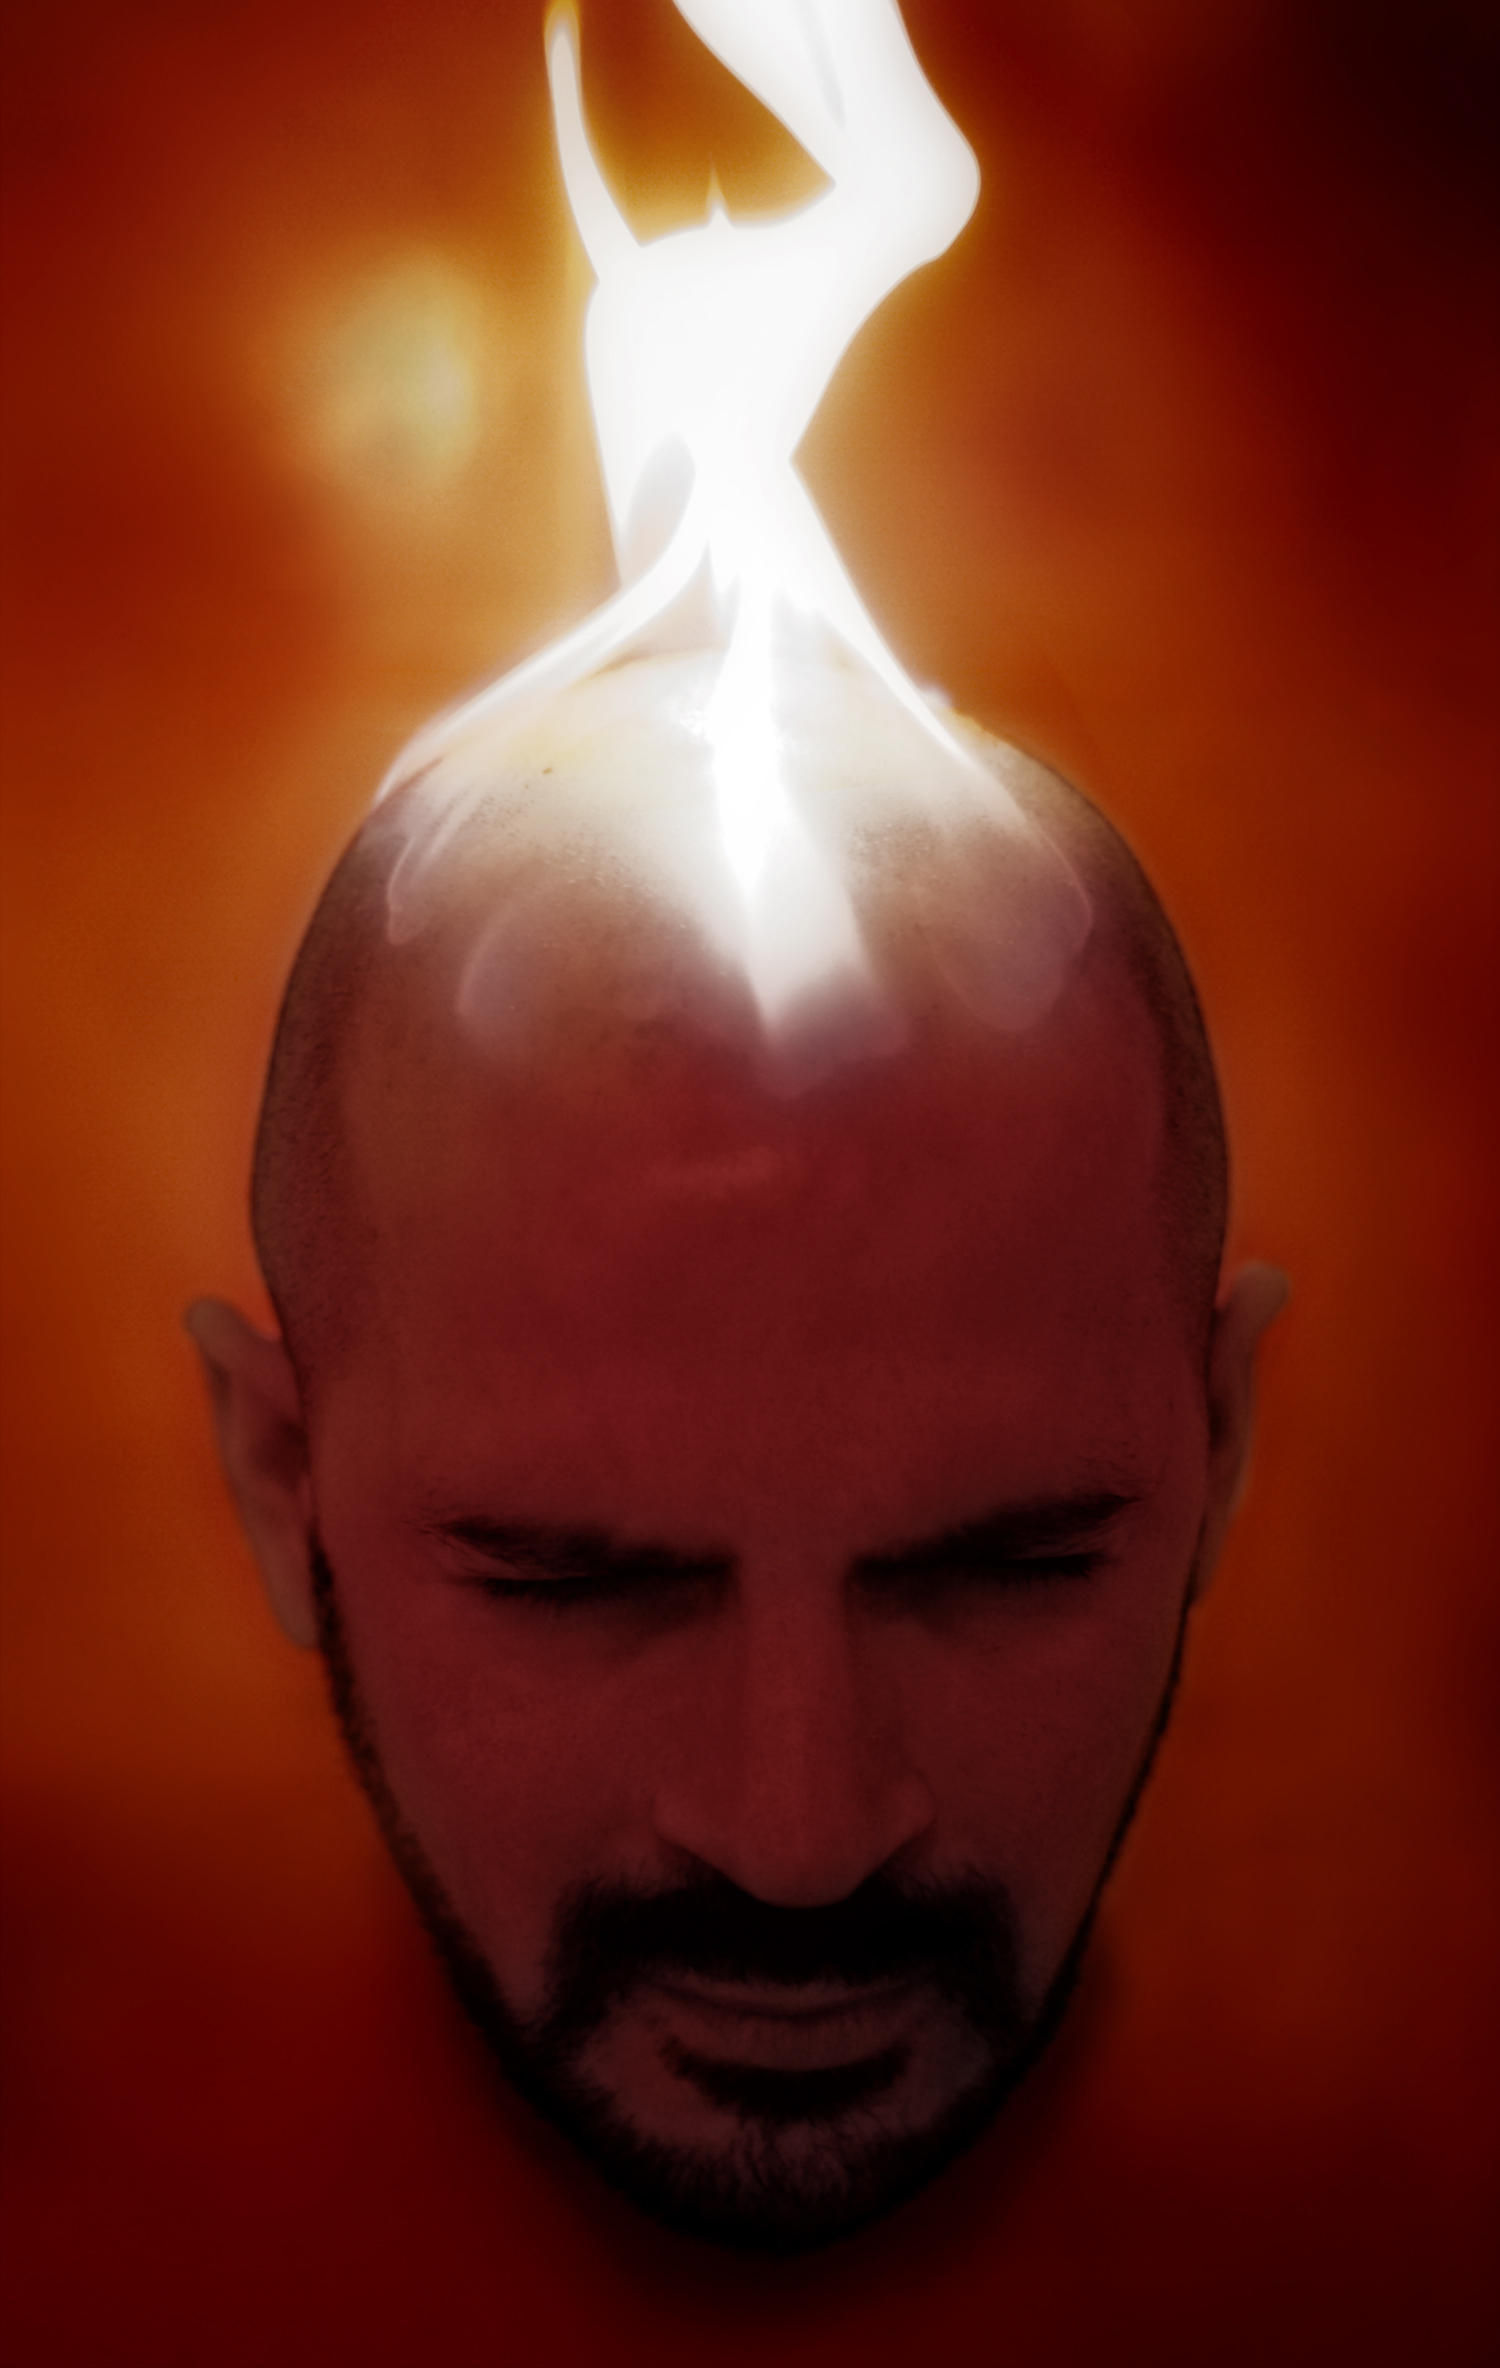 The Fire Picture, also known as The Red Portrait © Alejandro Lorenzo, 2008